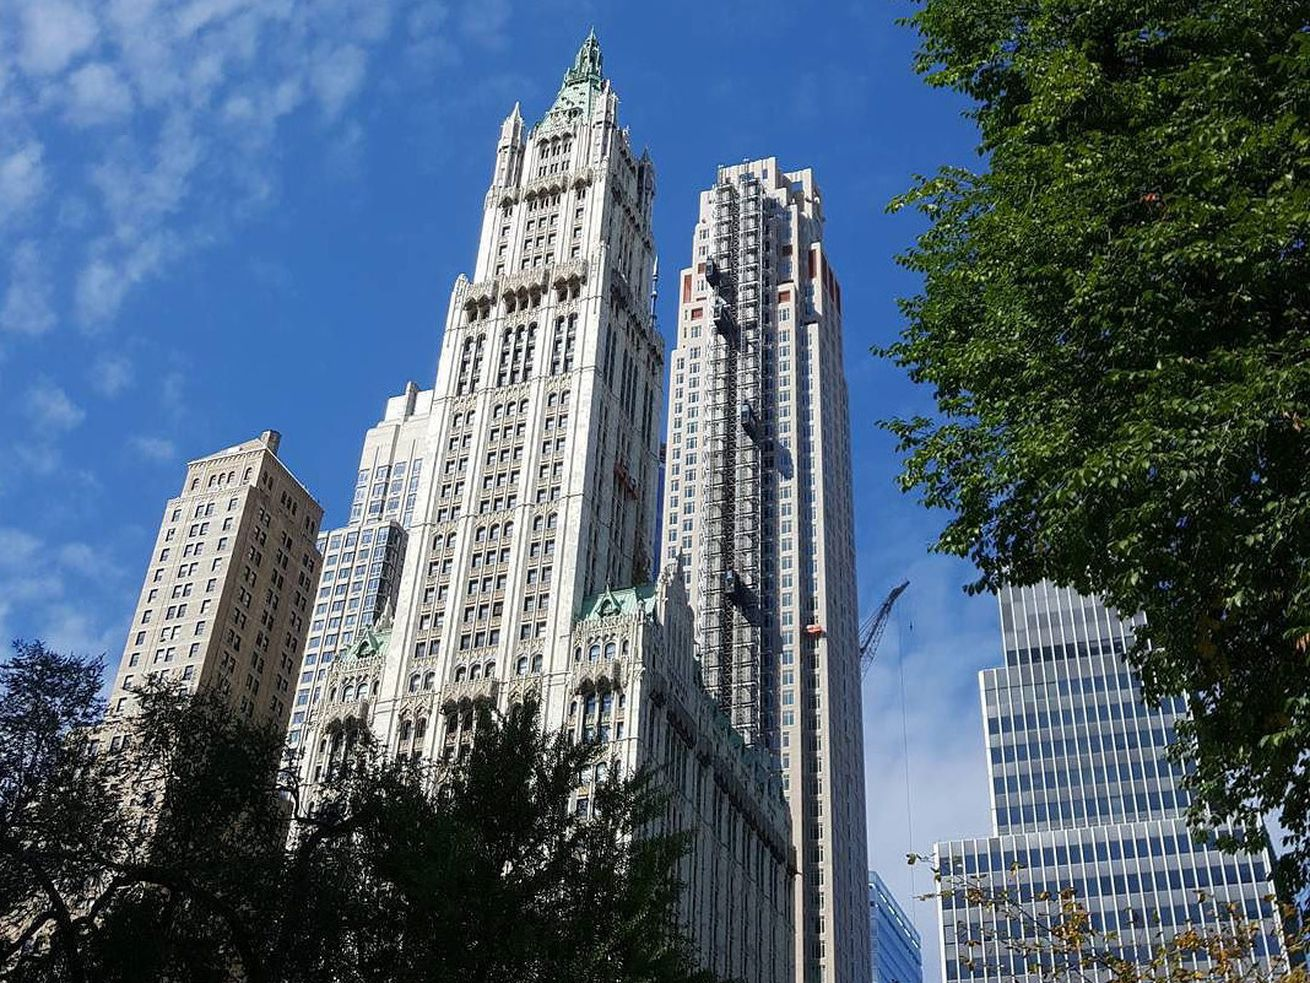 A high rise in Manhattan at 30 Park Place, with blue sky in the background and trees framing the photo.